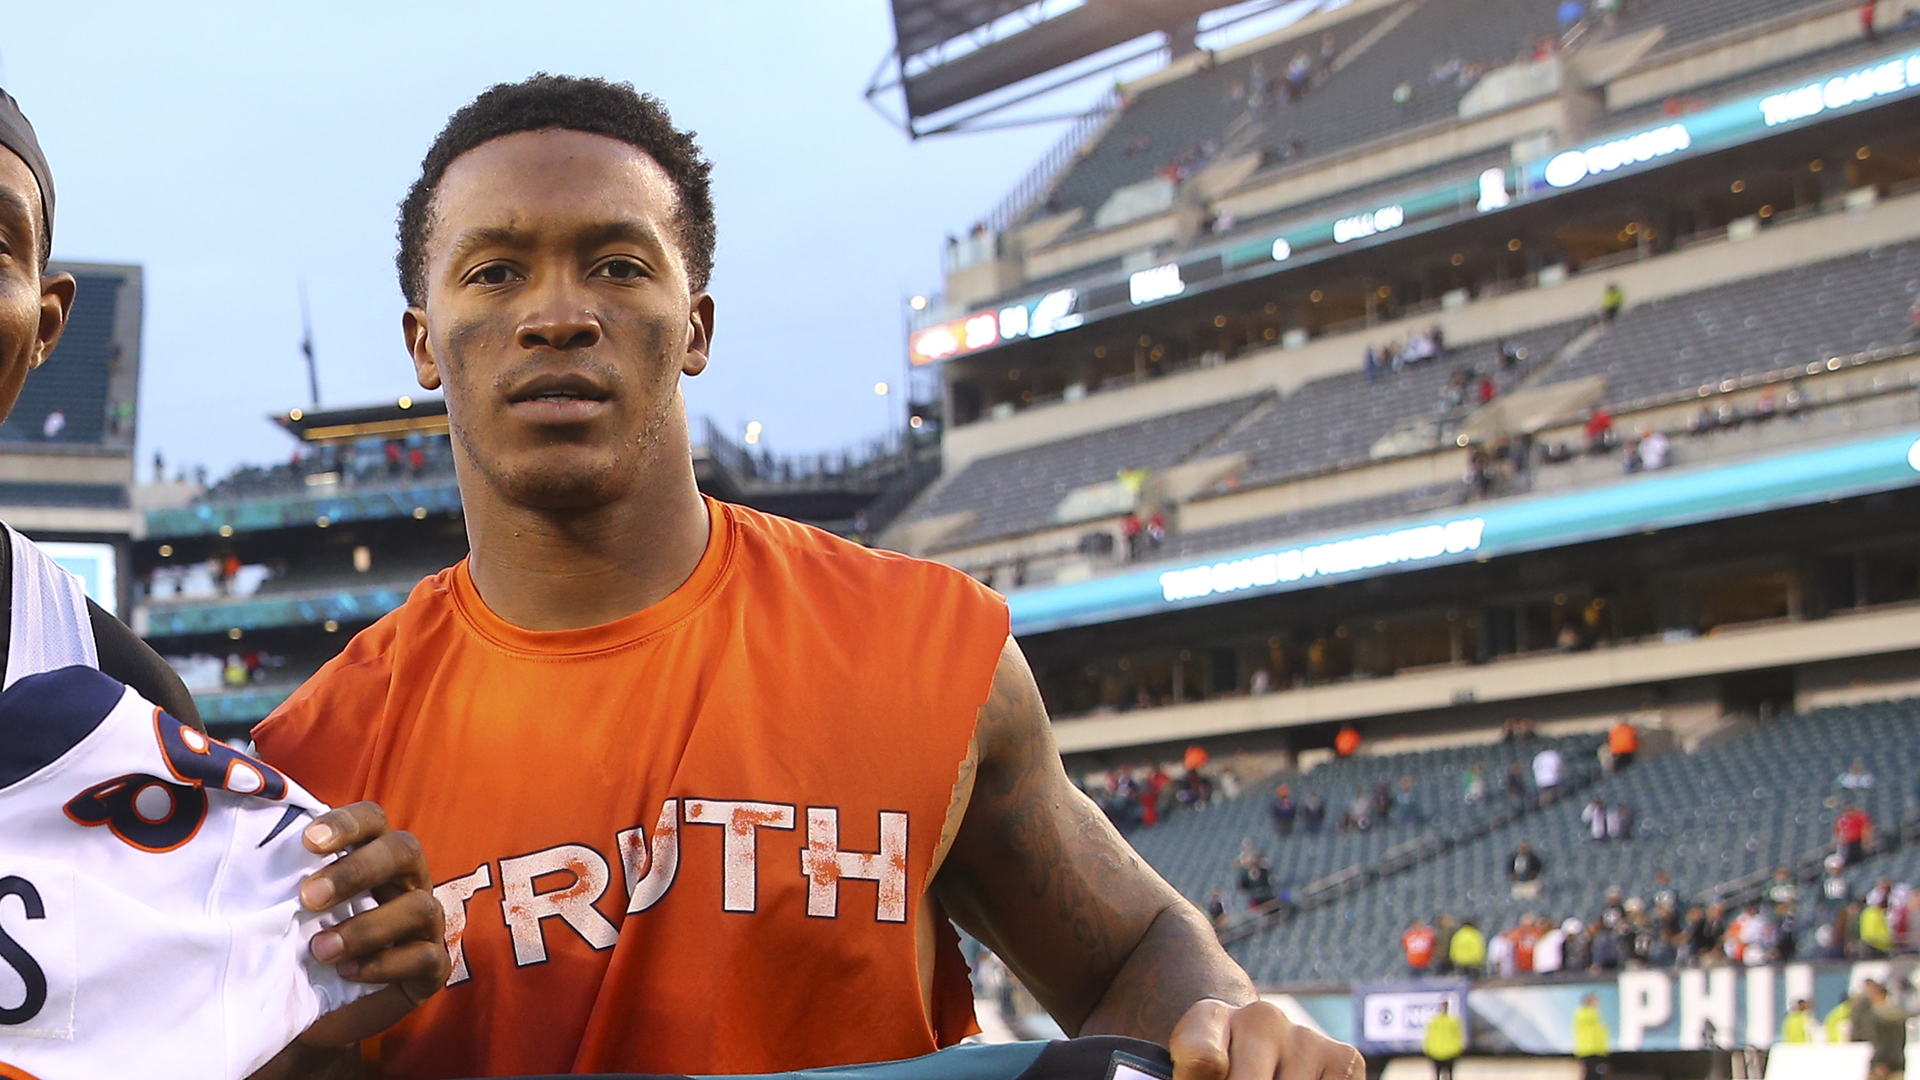 Patriots intend to re-sign Demaryius Thomas, reports say